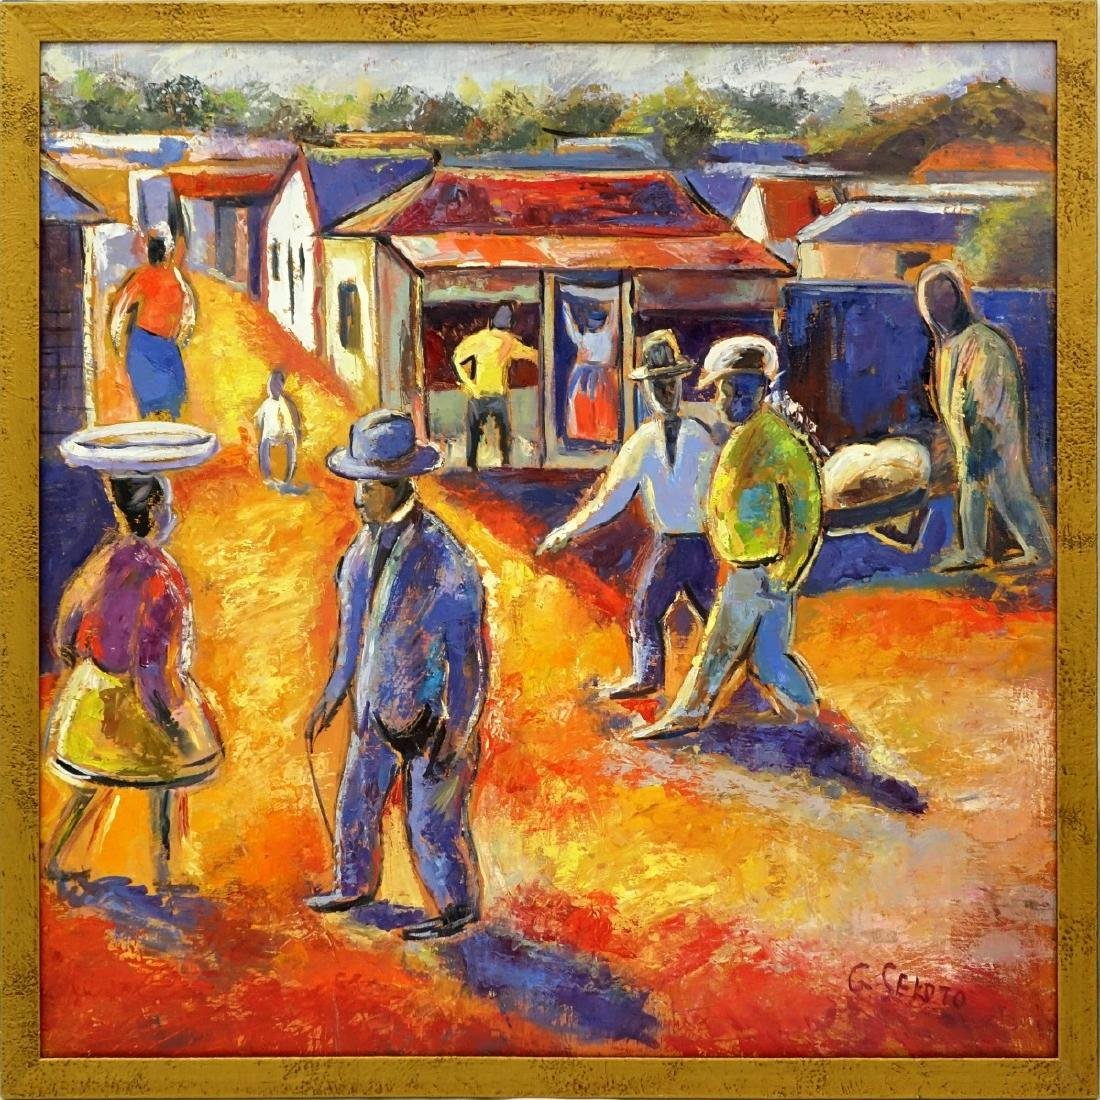 After: Gerard Sekoto (1913 - 1993) Oil/Canvas - 2